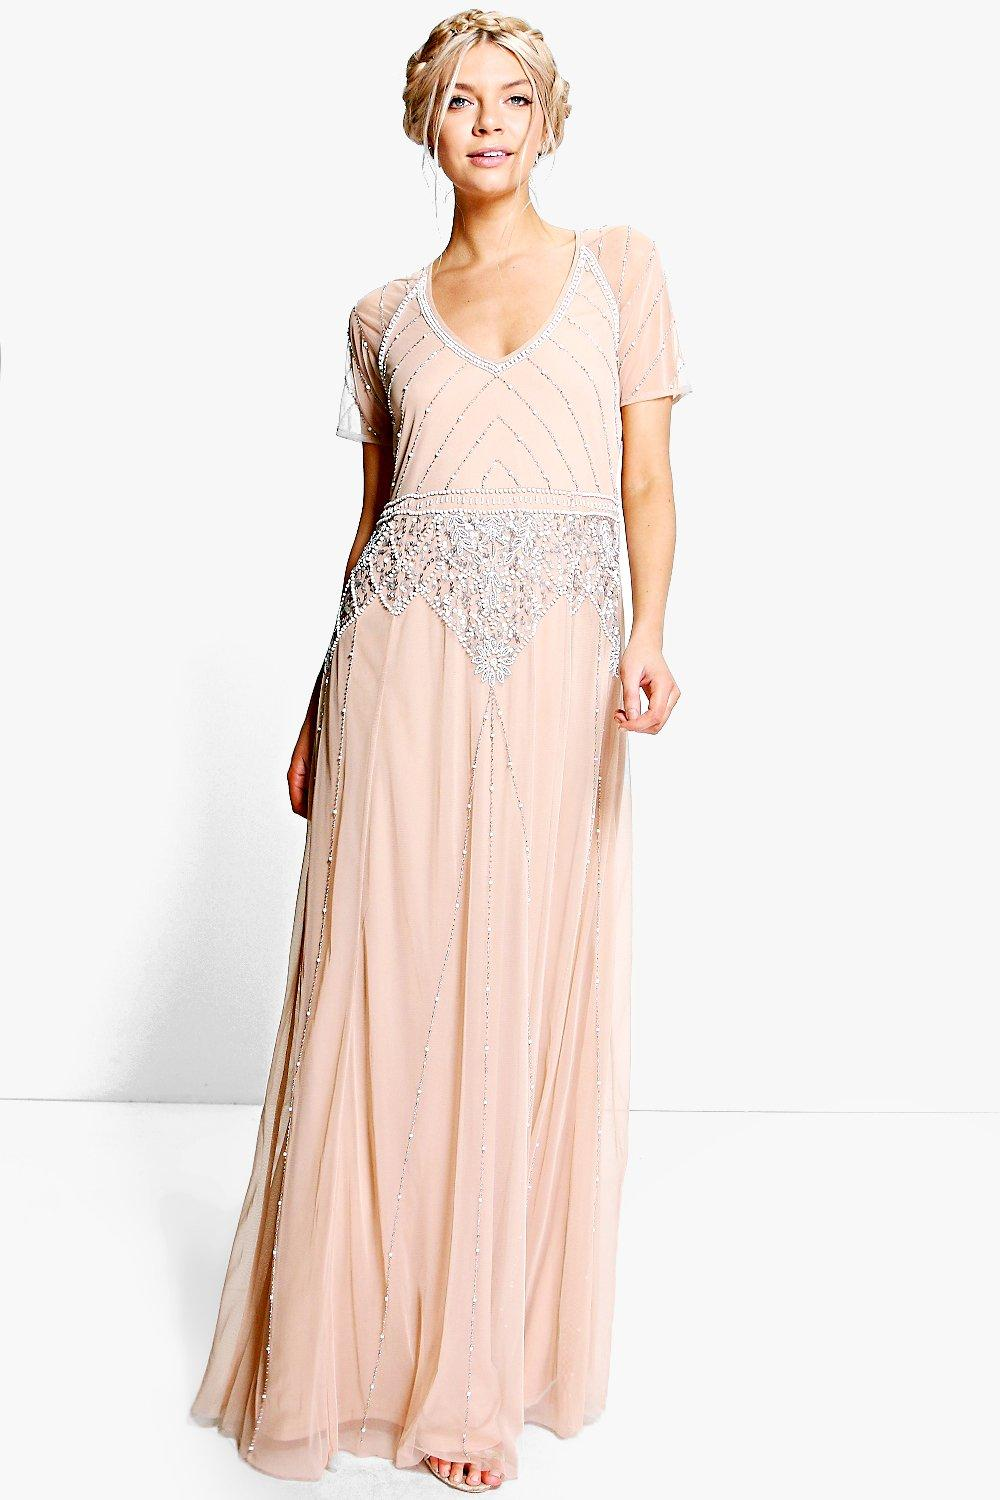 Authentic 1920s Makeup Tutorial Womens Boutique Beaded Cap Sleeve Maxi Bridesmaid Dress - Beige - 10 $28.00 AT vintagedancer.com